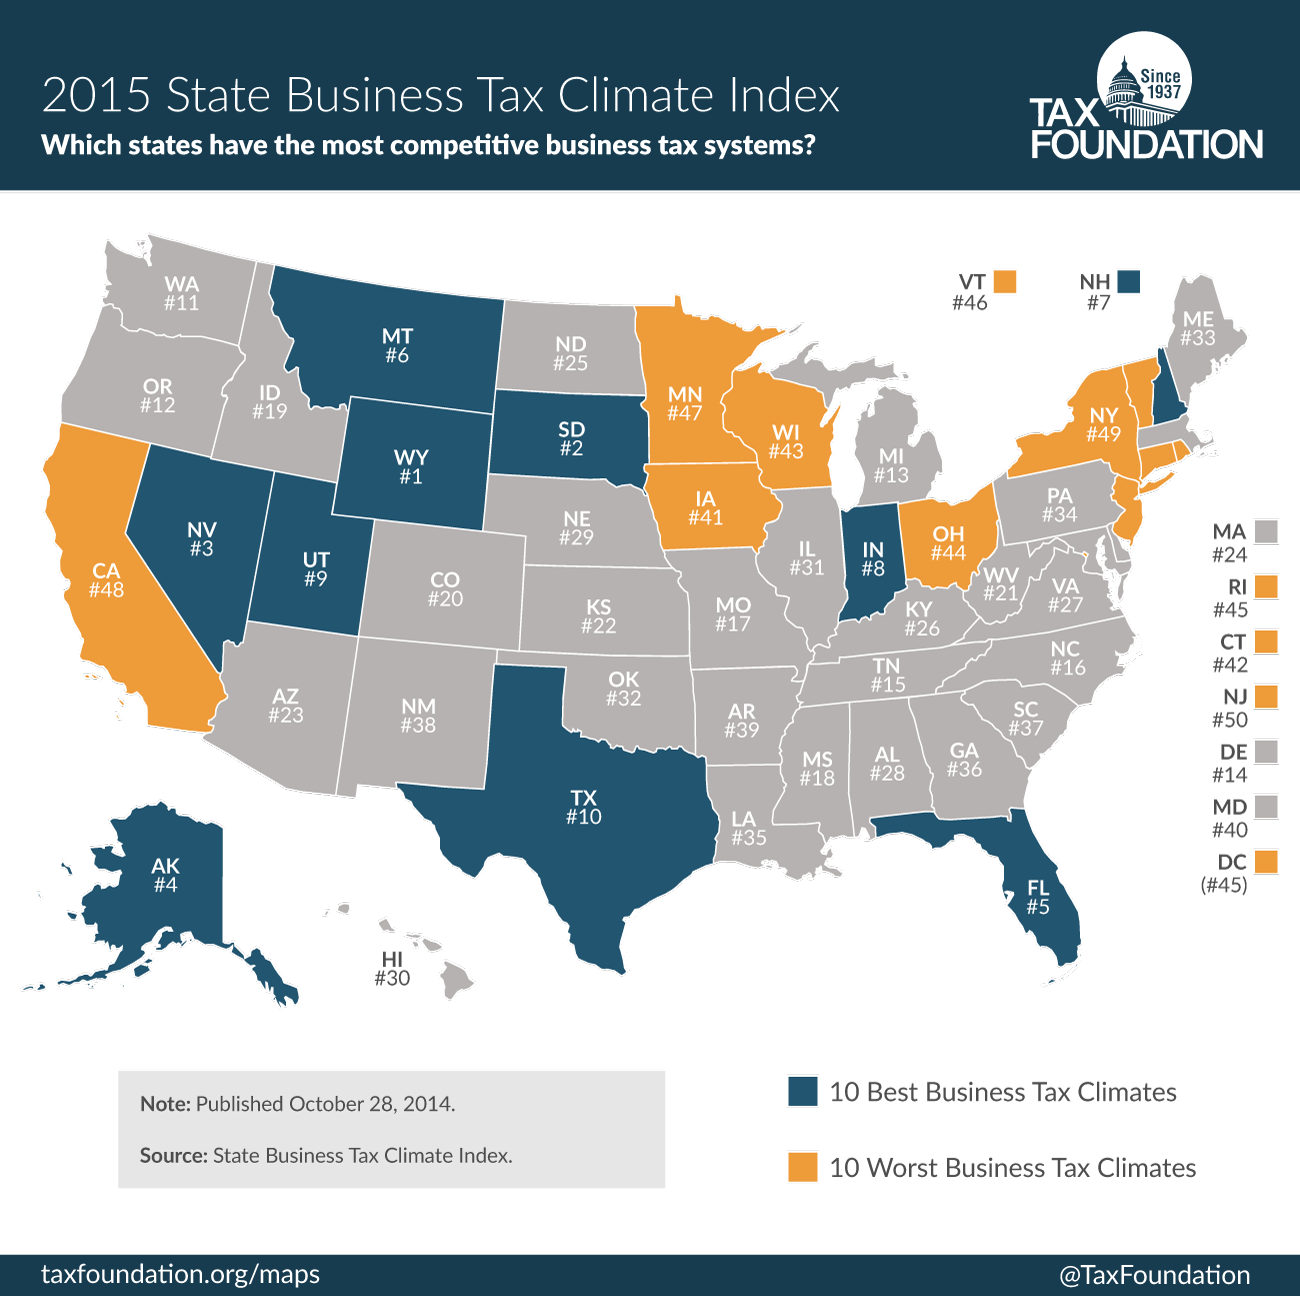 The 2015 State Business Tax Climate Index Tax Foundation of Hawaii